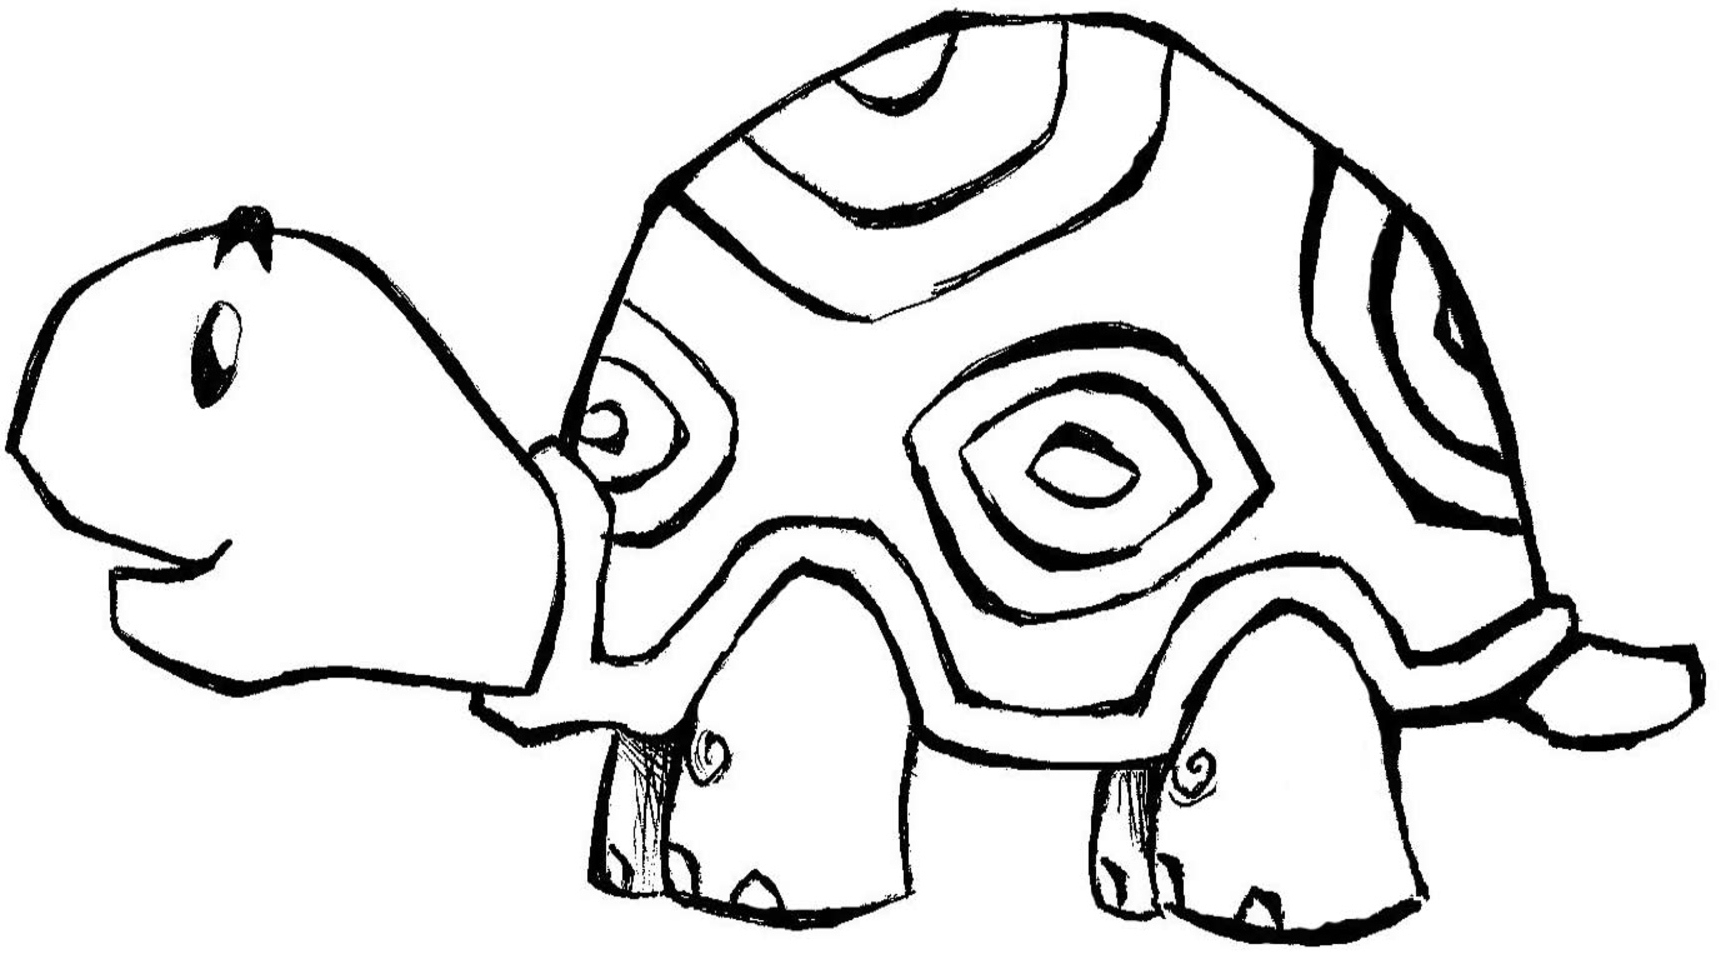 Coloring Pages For Kids To Print Out Free Pictures Of Animals To Print Download Free Clip Art Free Clip